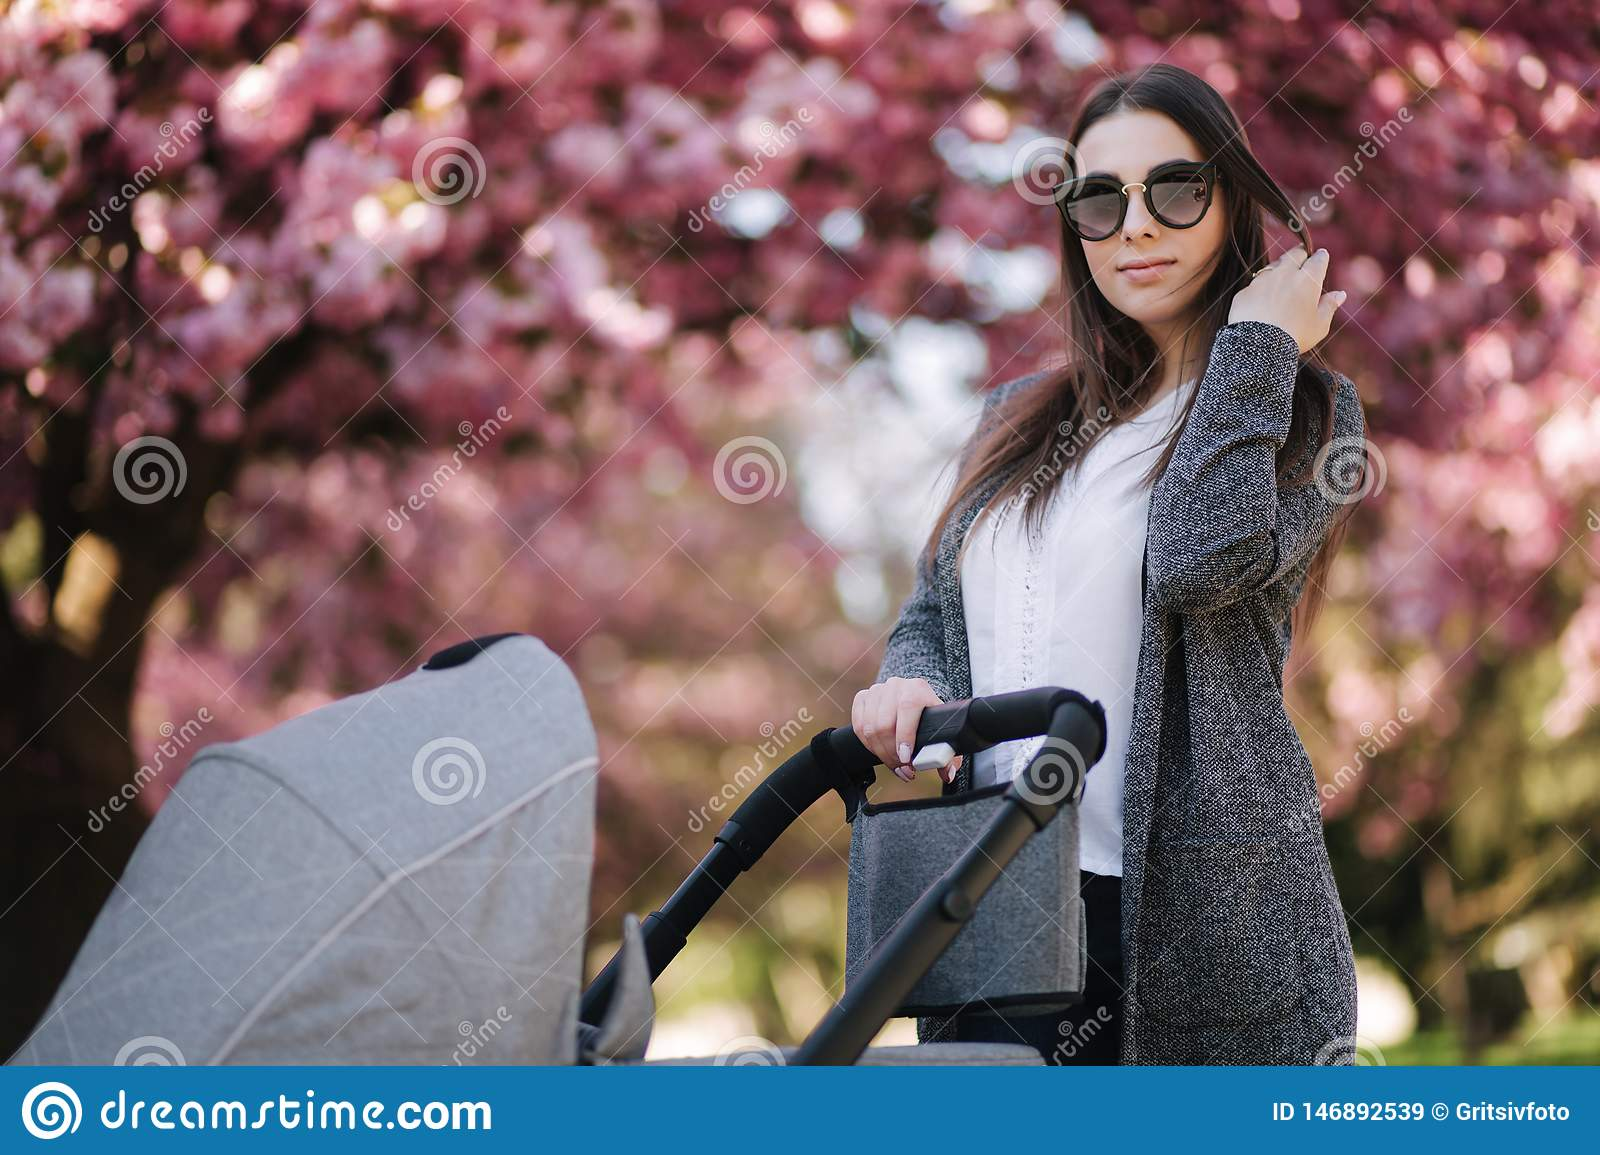 Portrait of mom stand with stroller in the park. Happy young mother walking with baby. Background of pink tree